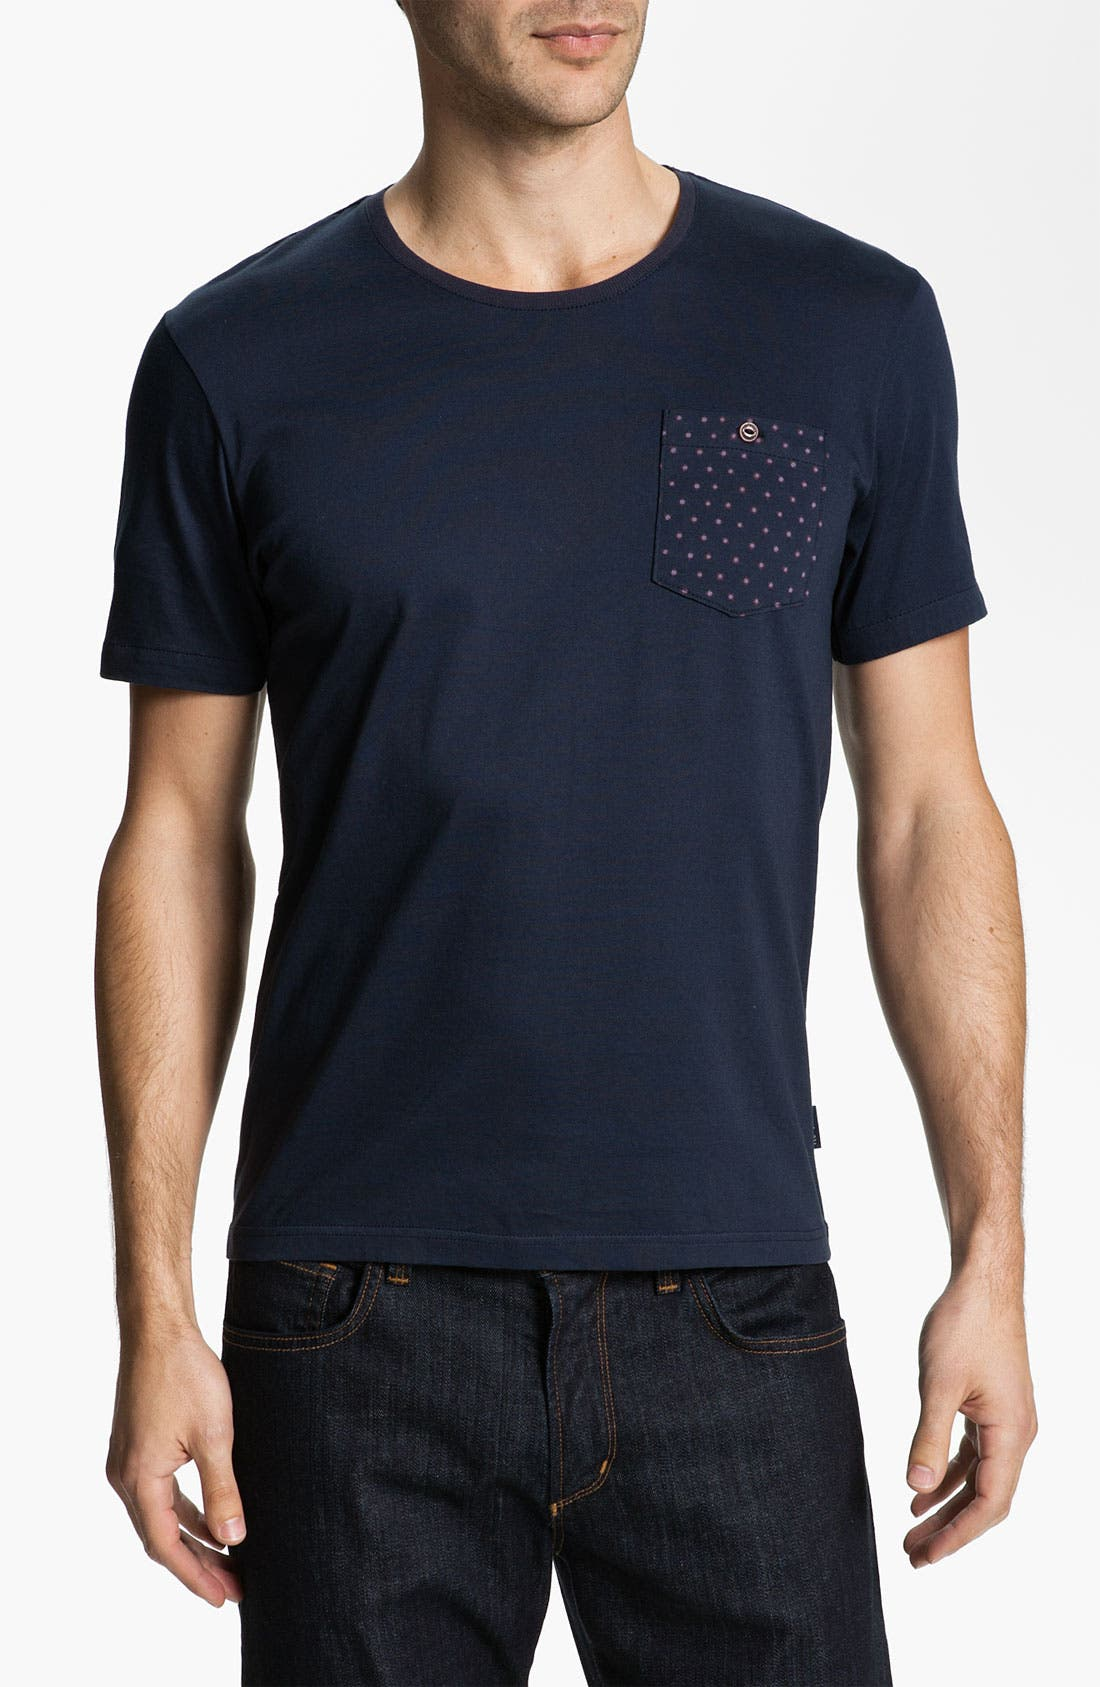 Alternate Image 1 Selected - Ted Baker London 'Nonotno' Crewneck T-Shirt